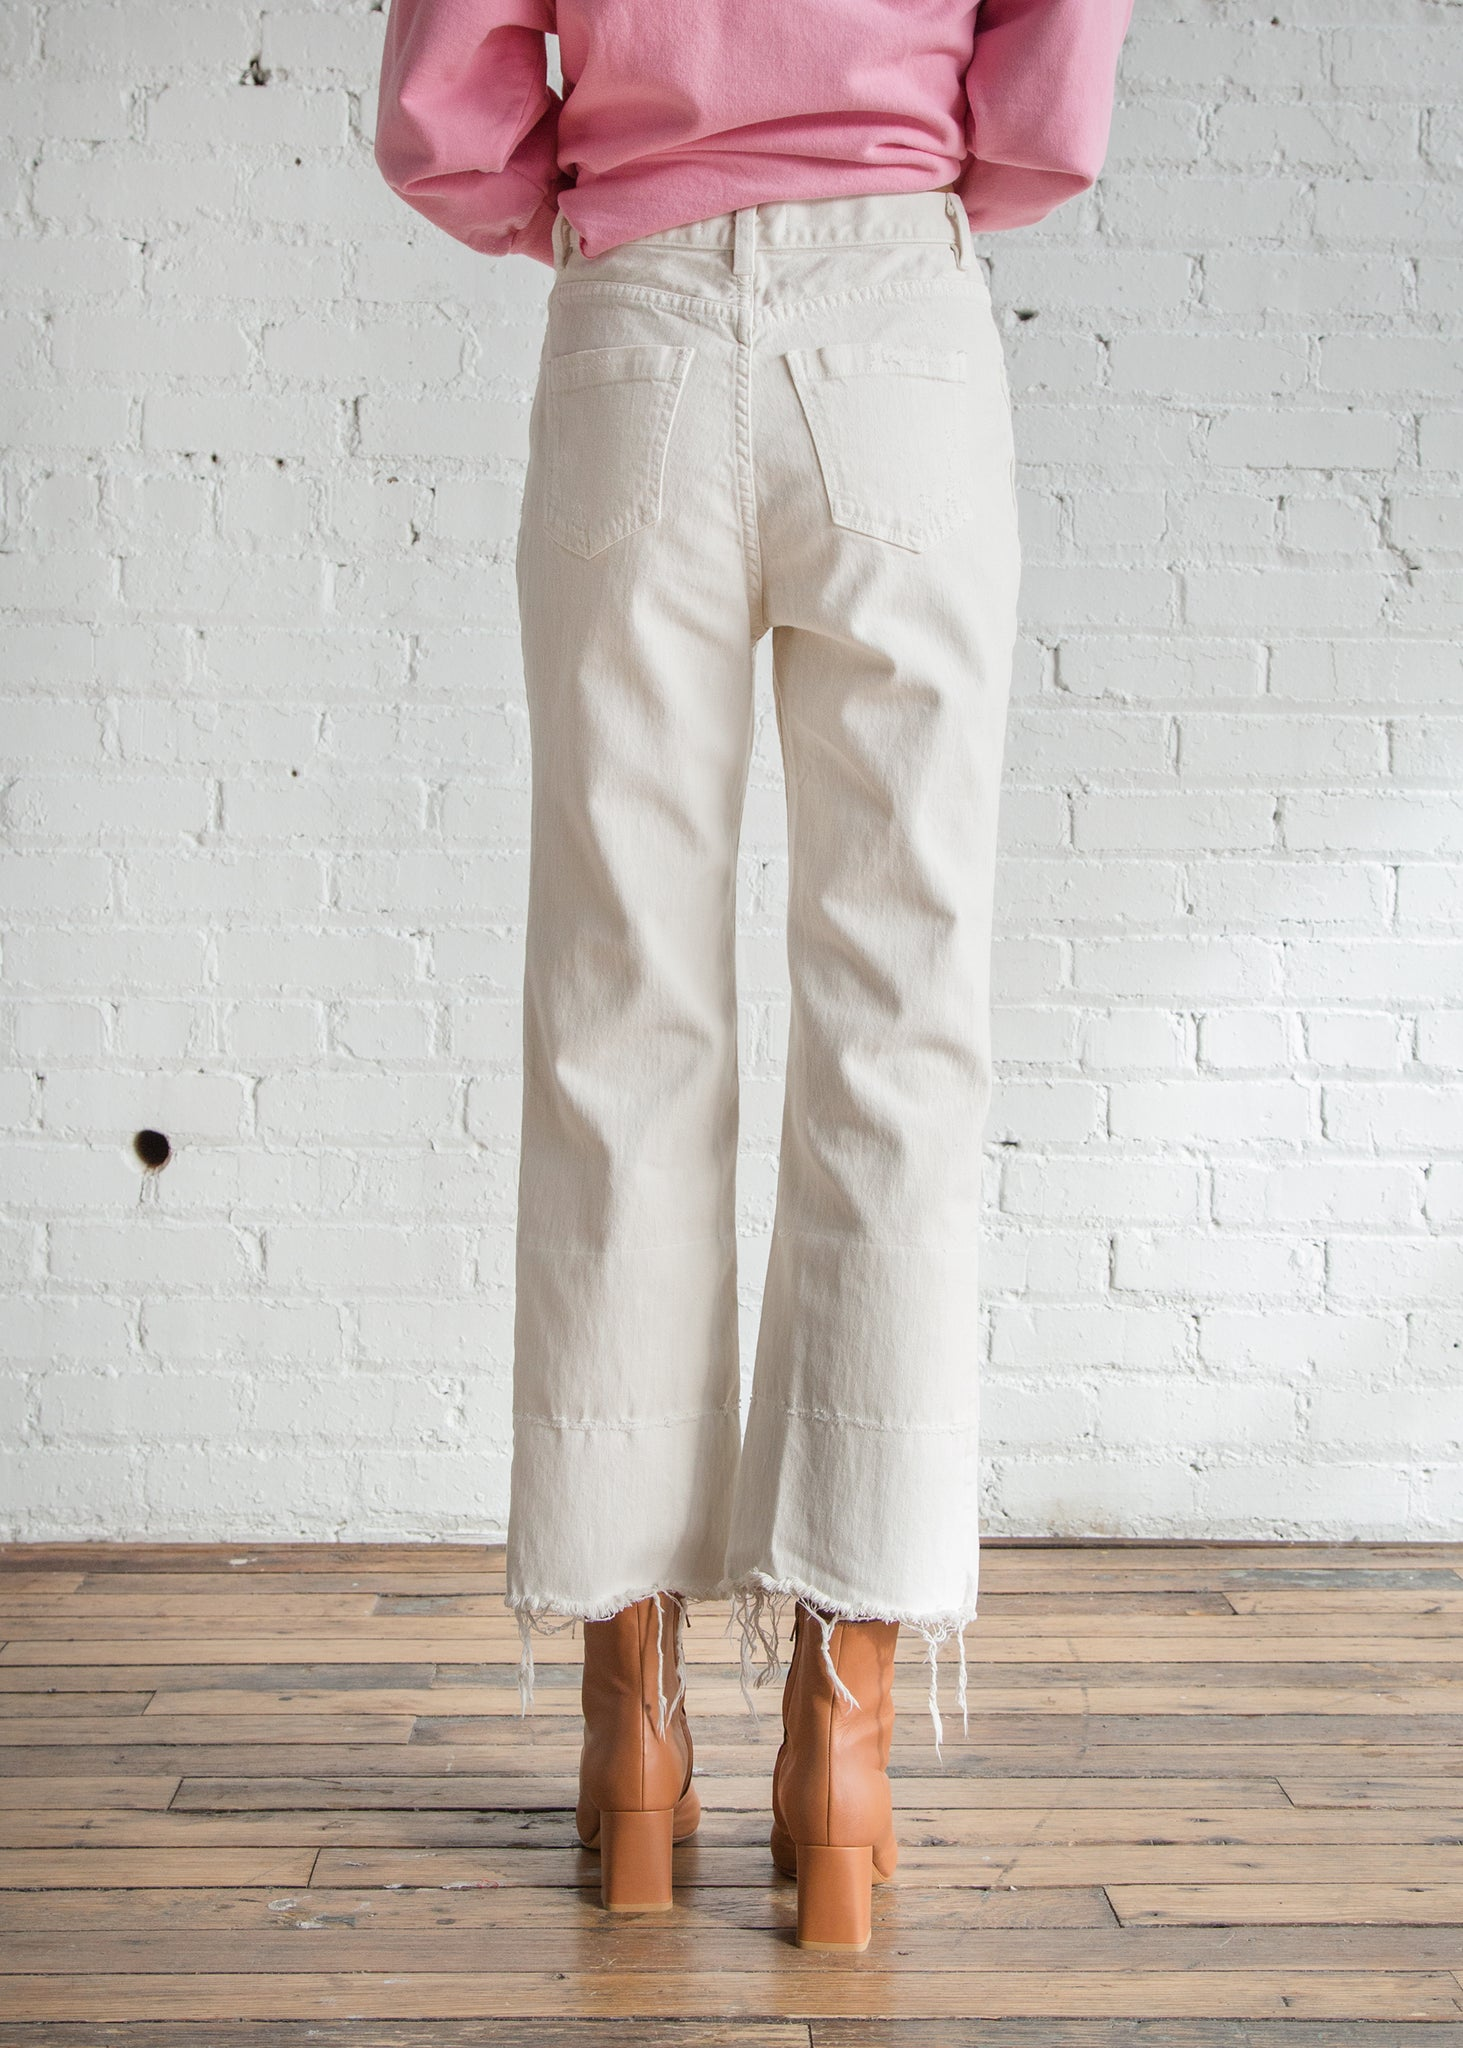 Rachel Comey Slim Legion Pant Dirty White - SOLD OUT